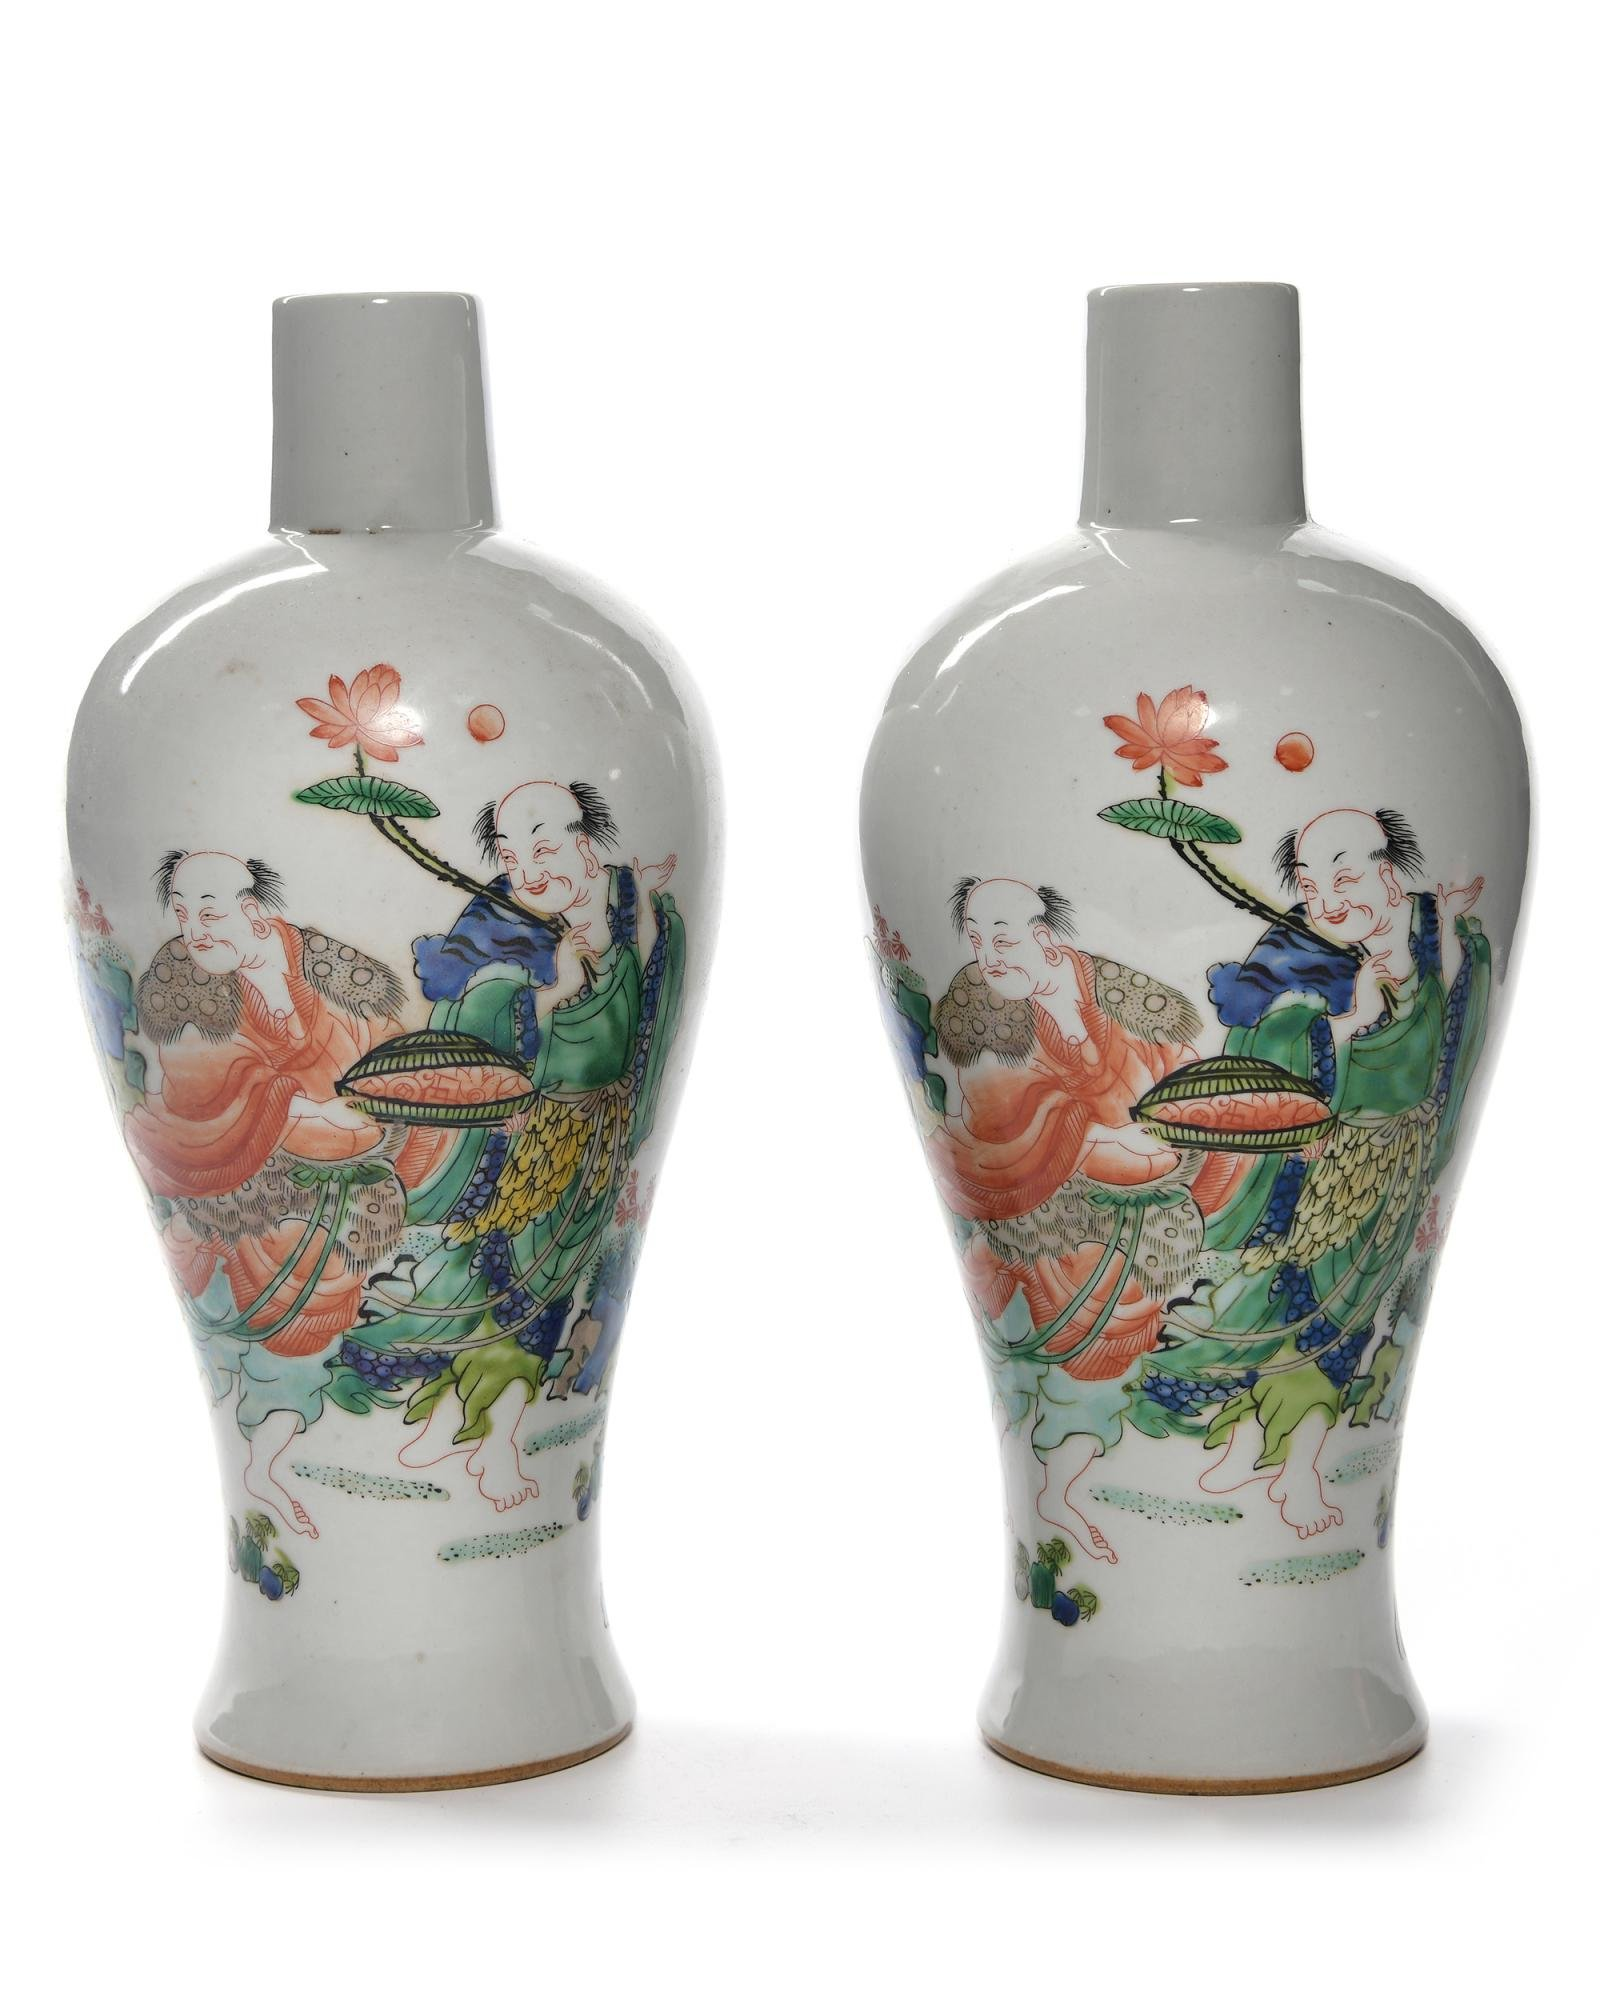 A PAIR OF CHINESE FAMILLE VERTE VASES, CHINA, 19TH-20TH